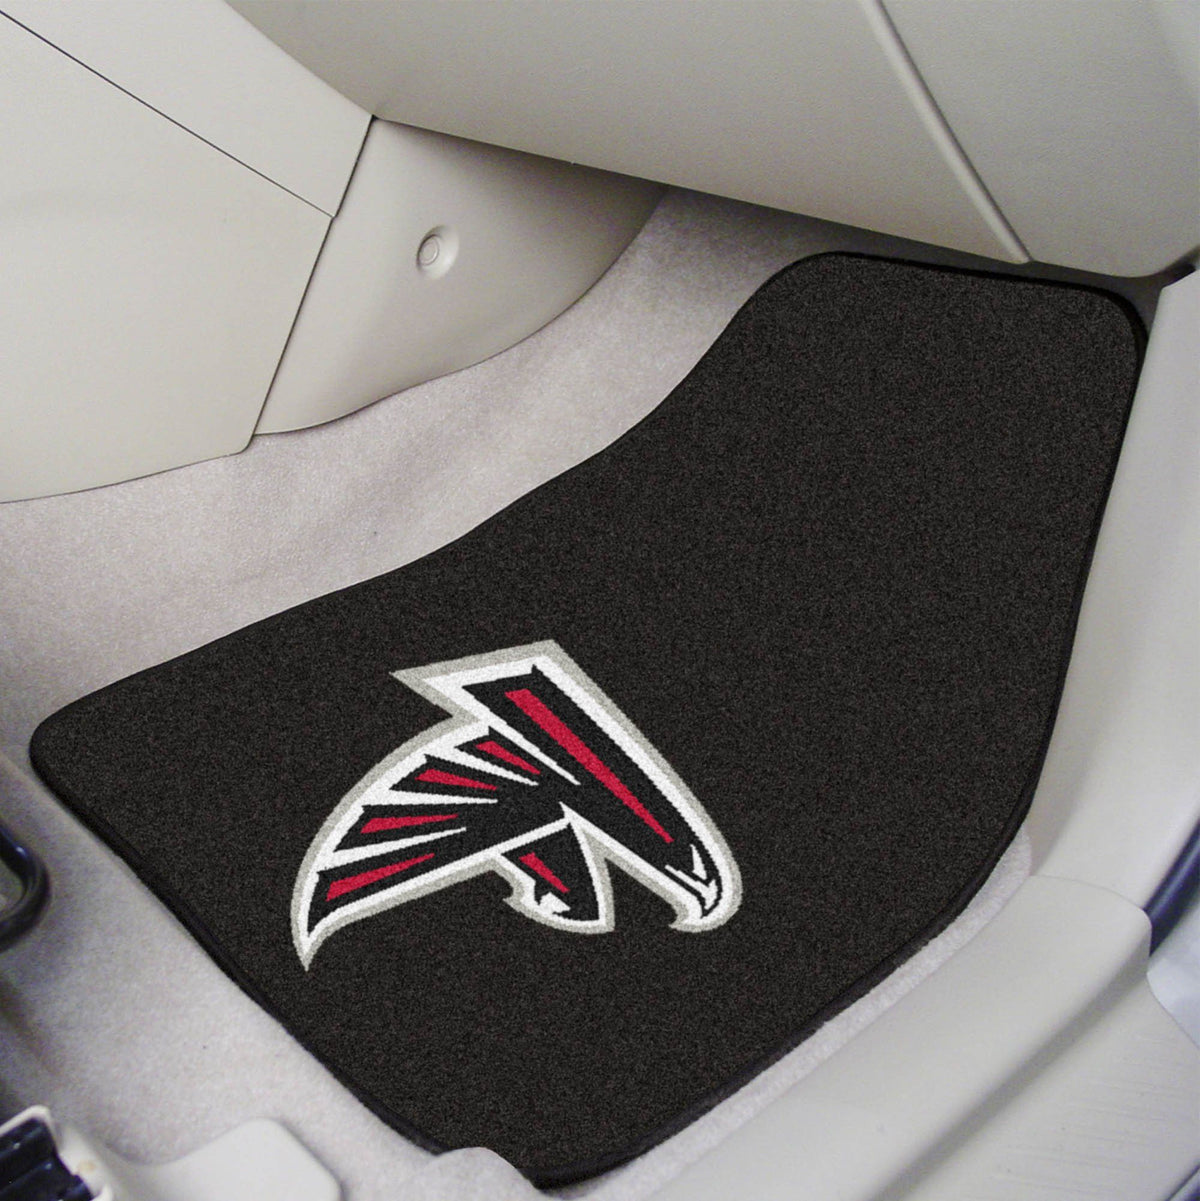 "NFL - 2-pc Carpet Car Mat Set, 17"" x 27"" NFL Mats, Front Car Mats, 2-pc Carpet Car Mat Set, NFL, Auto Fan Mats Atlanta Falcons"